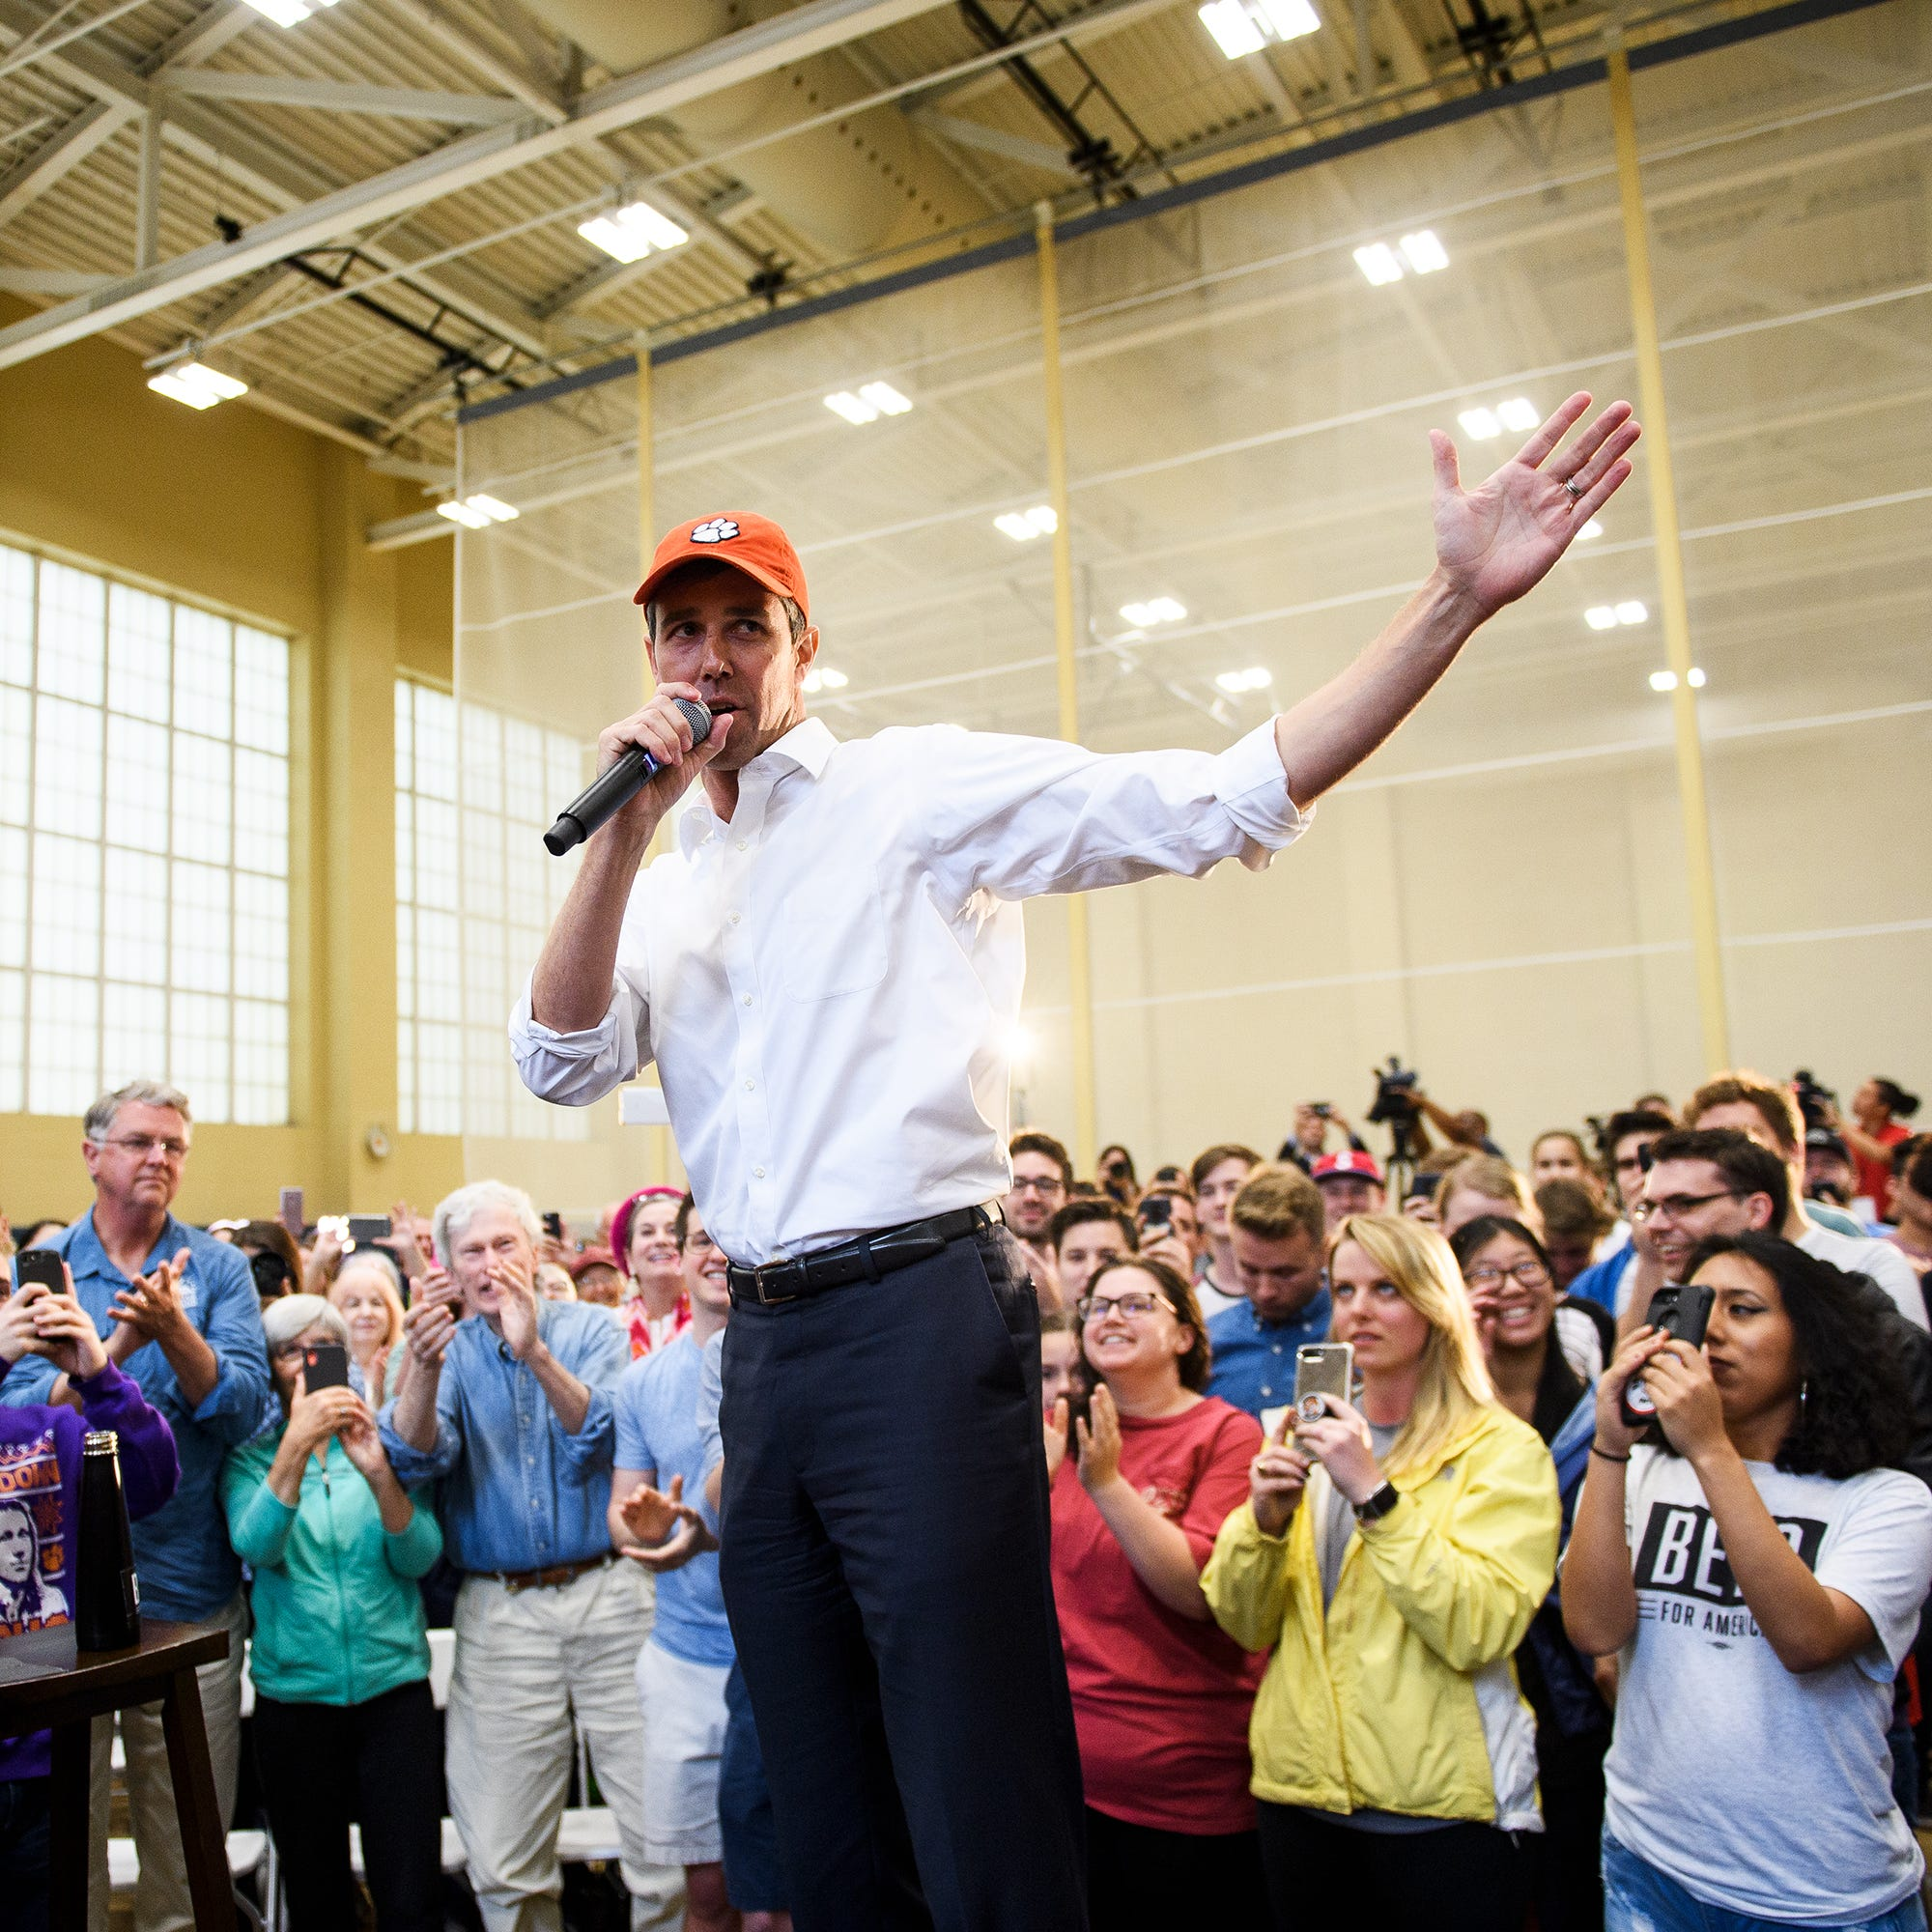 Beto O'Rourke at Clemson rally: 'Truth' must be told about Ben Tillman's racist views